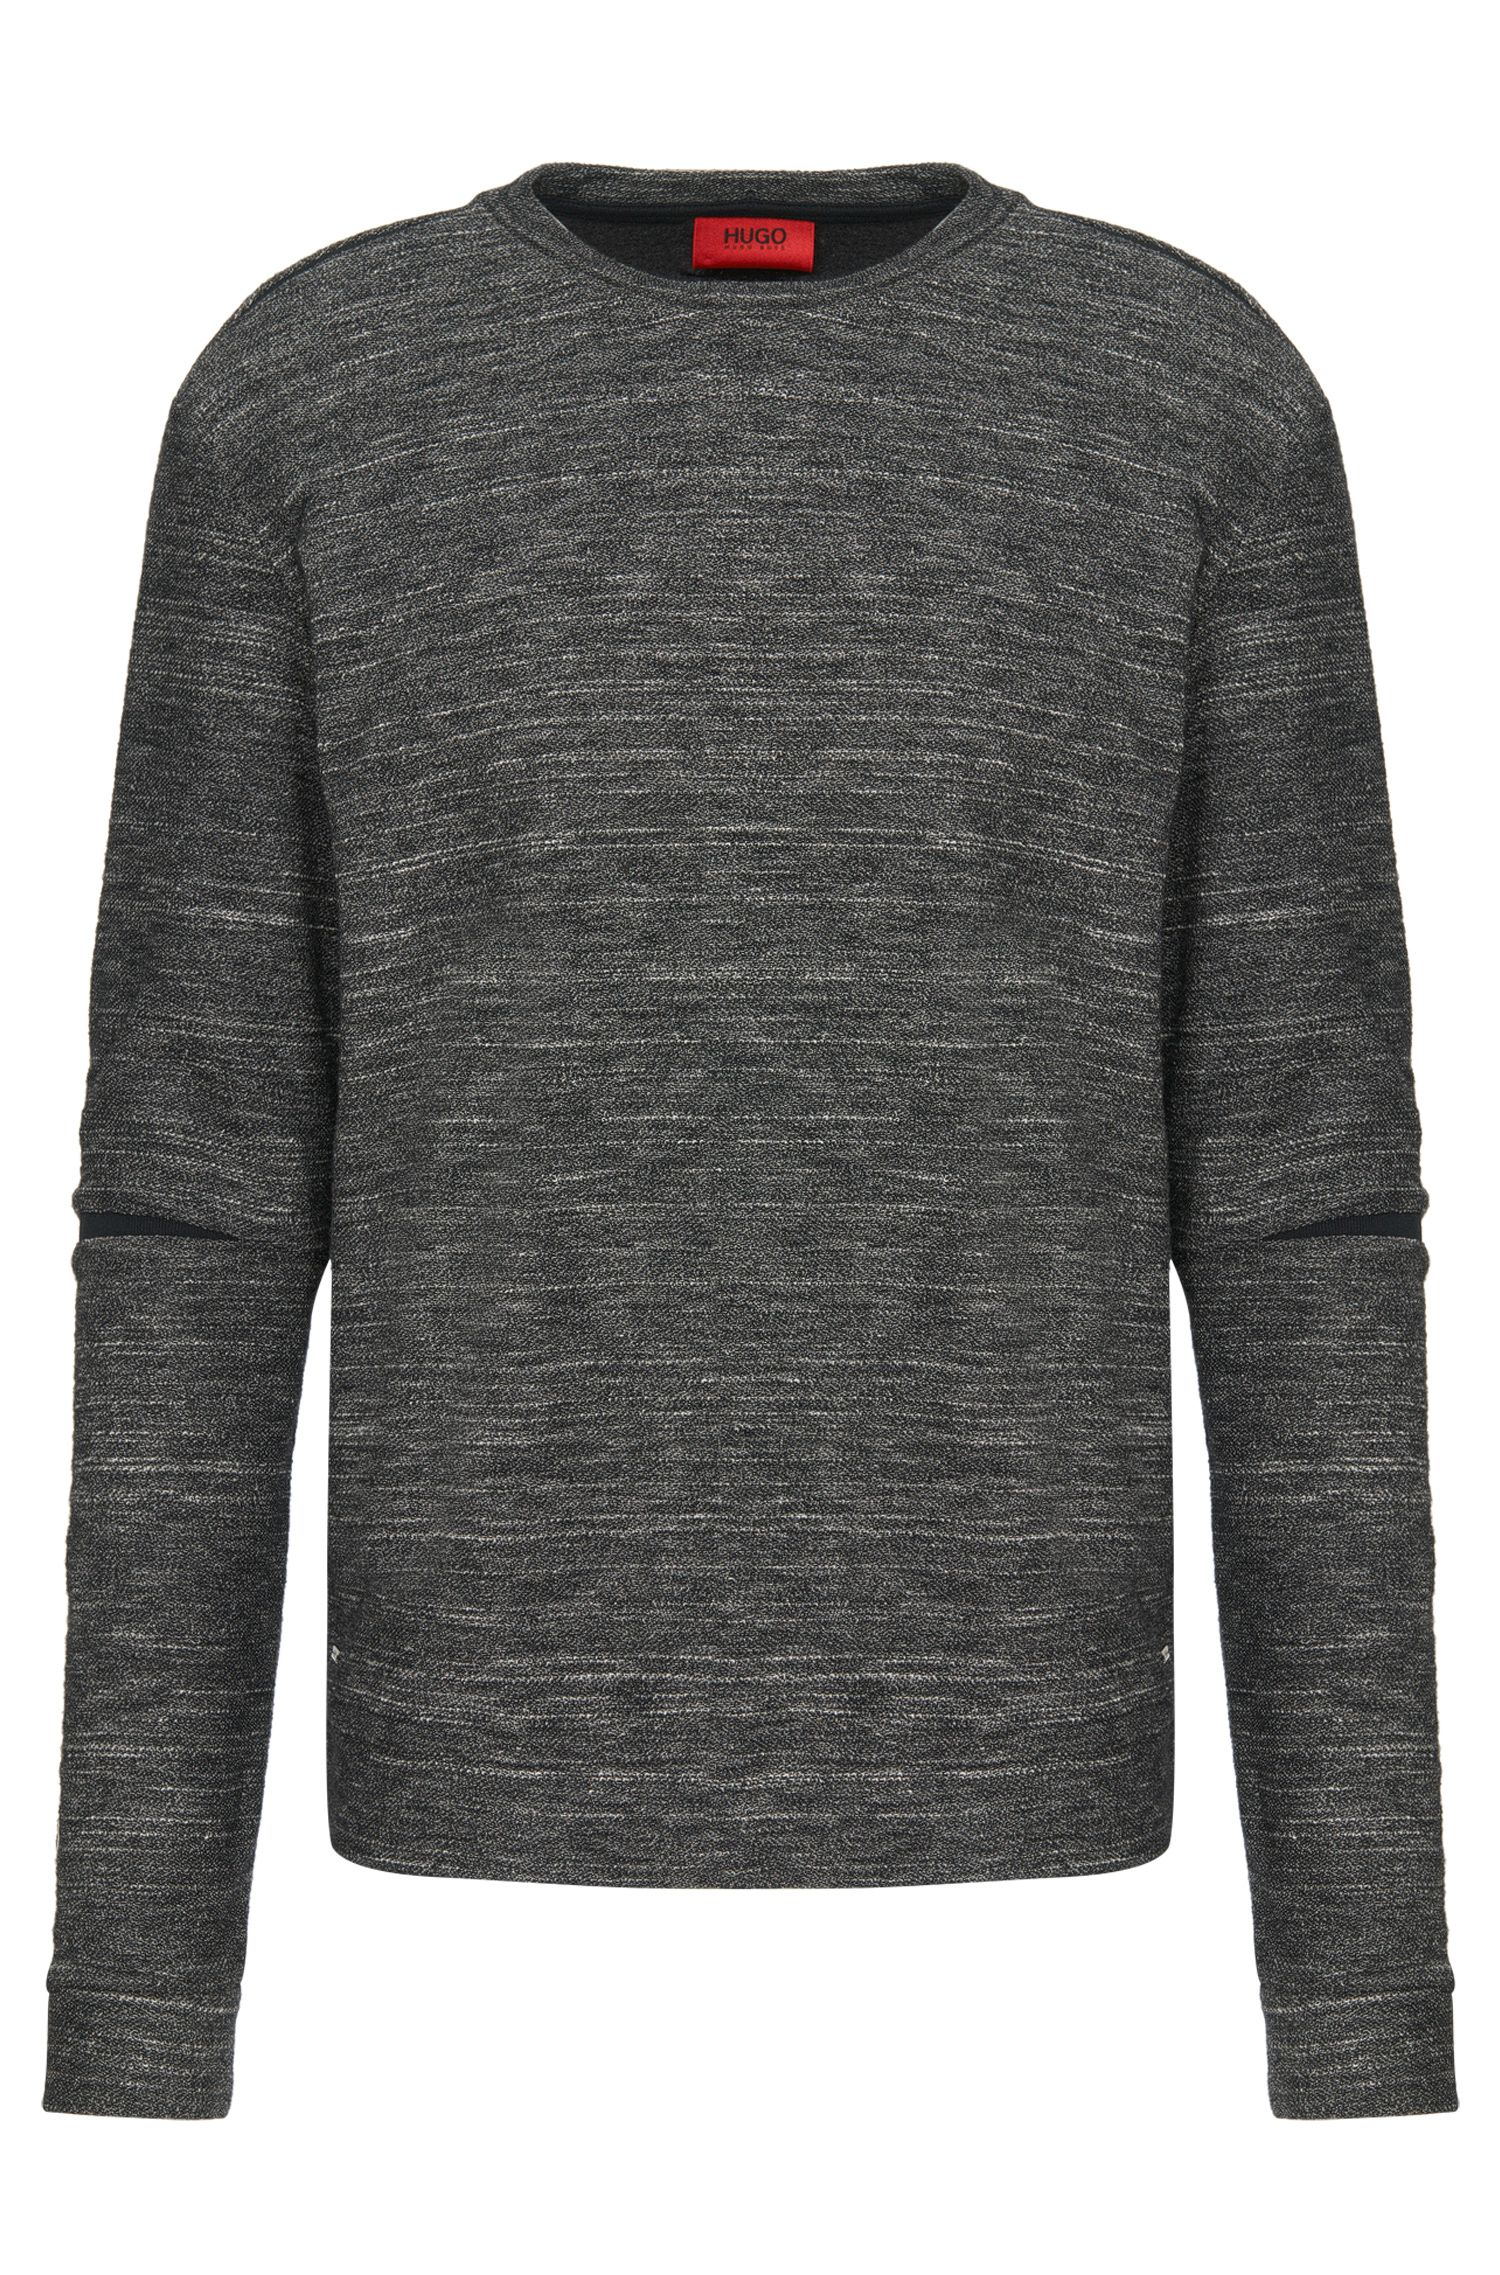 'Daetano' | Cotton Wool Blend Split-Seam Sweatshirt